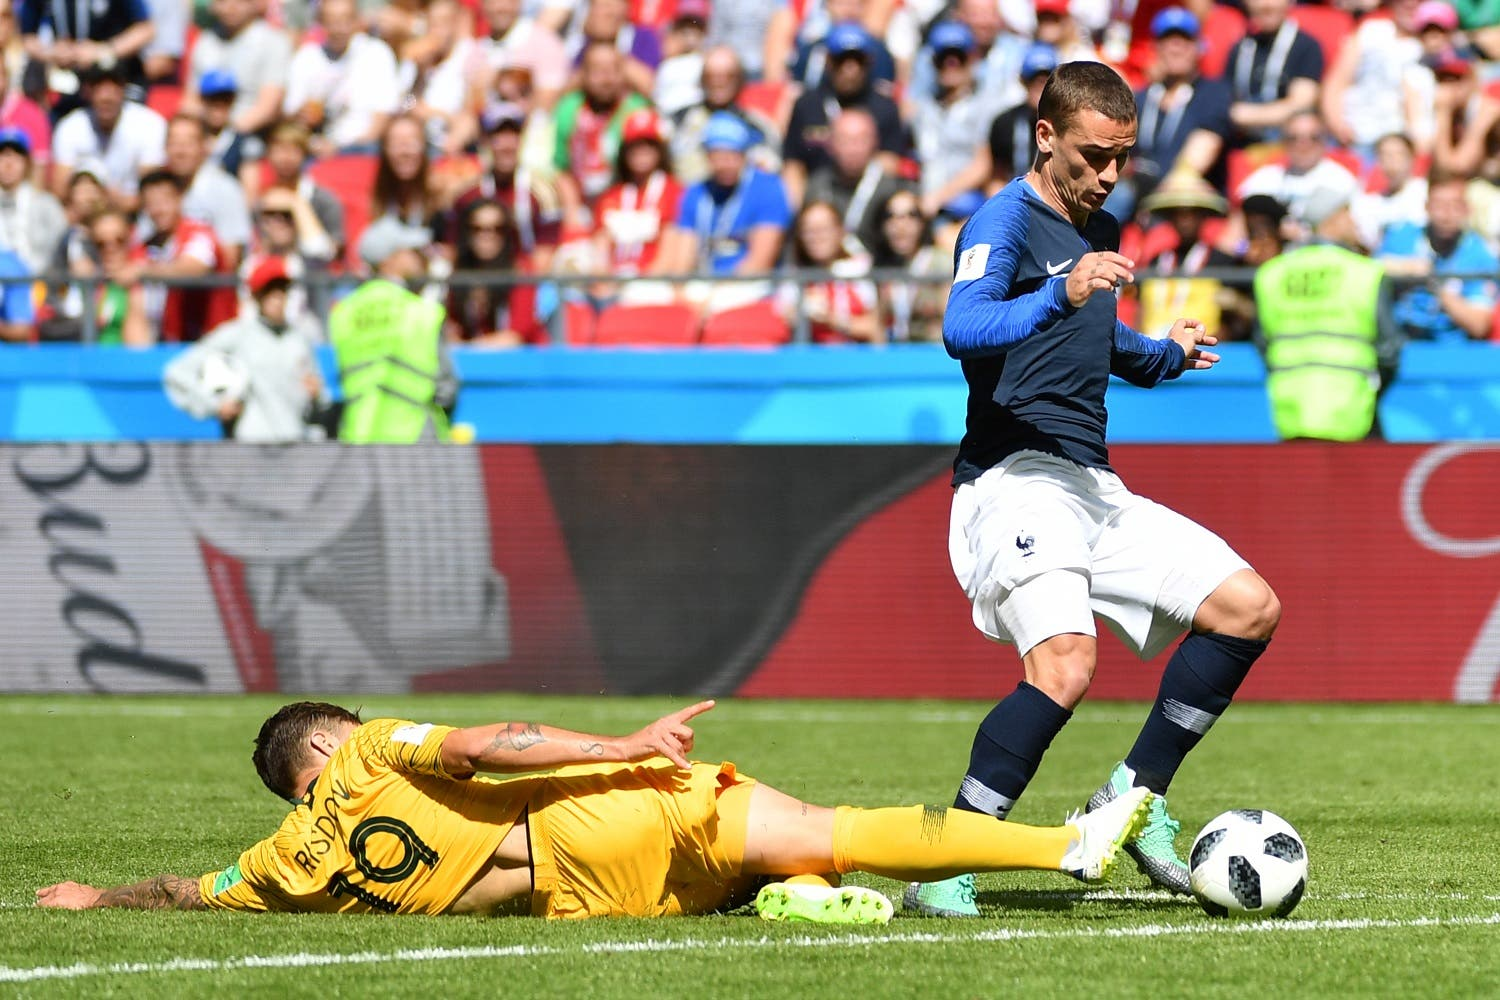 France's forward Antoine Griezmann (R) is tackled by Australia's defender Joshua Risdon giving a penalty opportunity to France. (AFP)